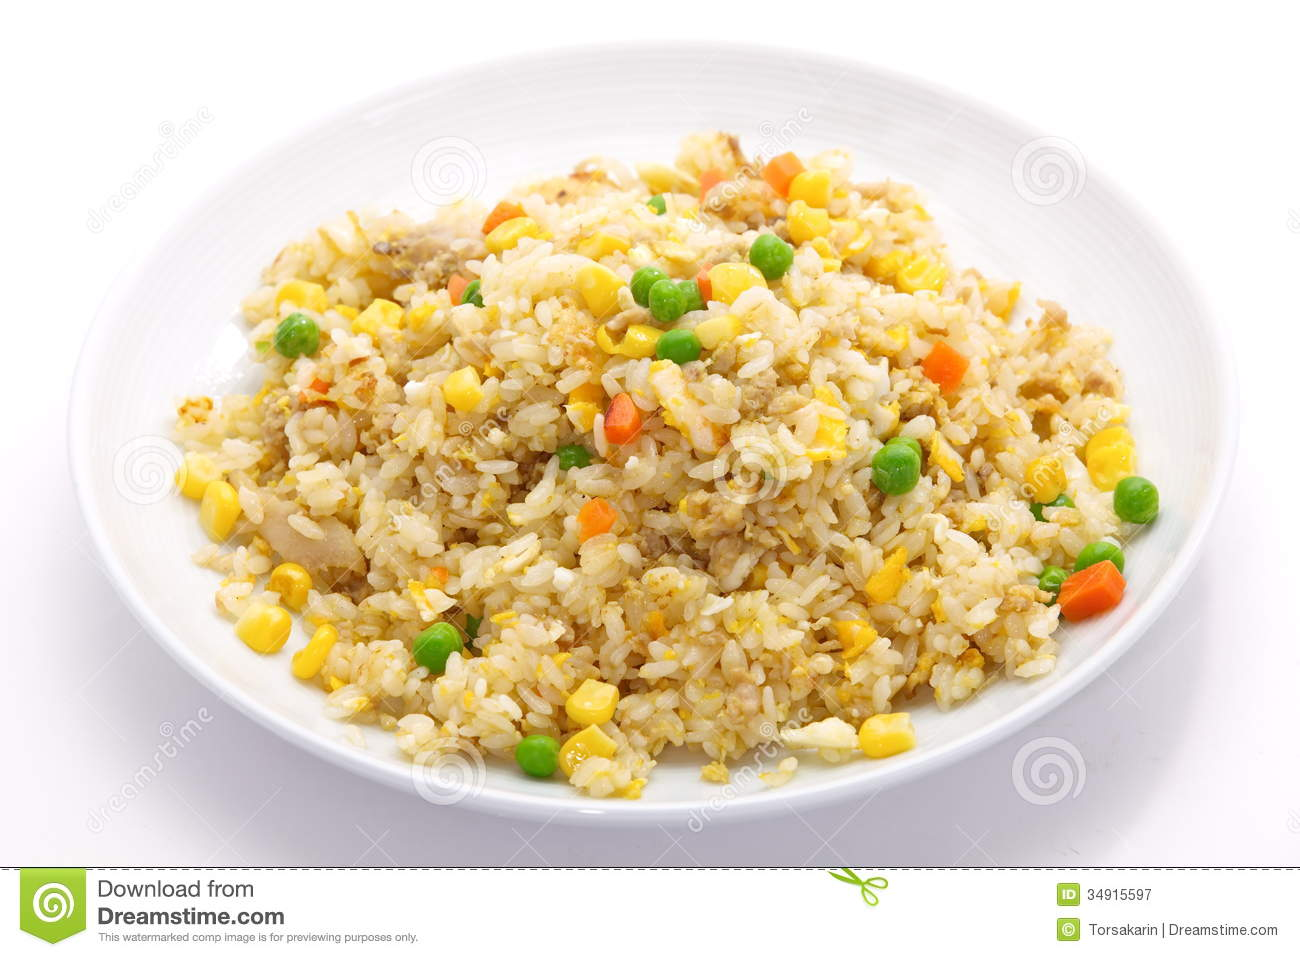 Fried Rice Royalty Free Stock Photography   Image  34915597